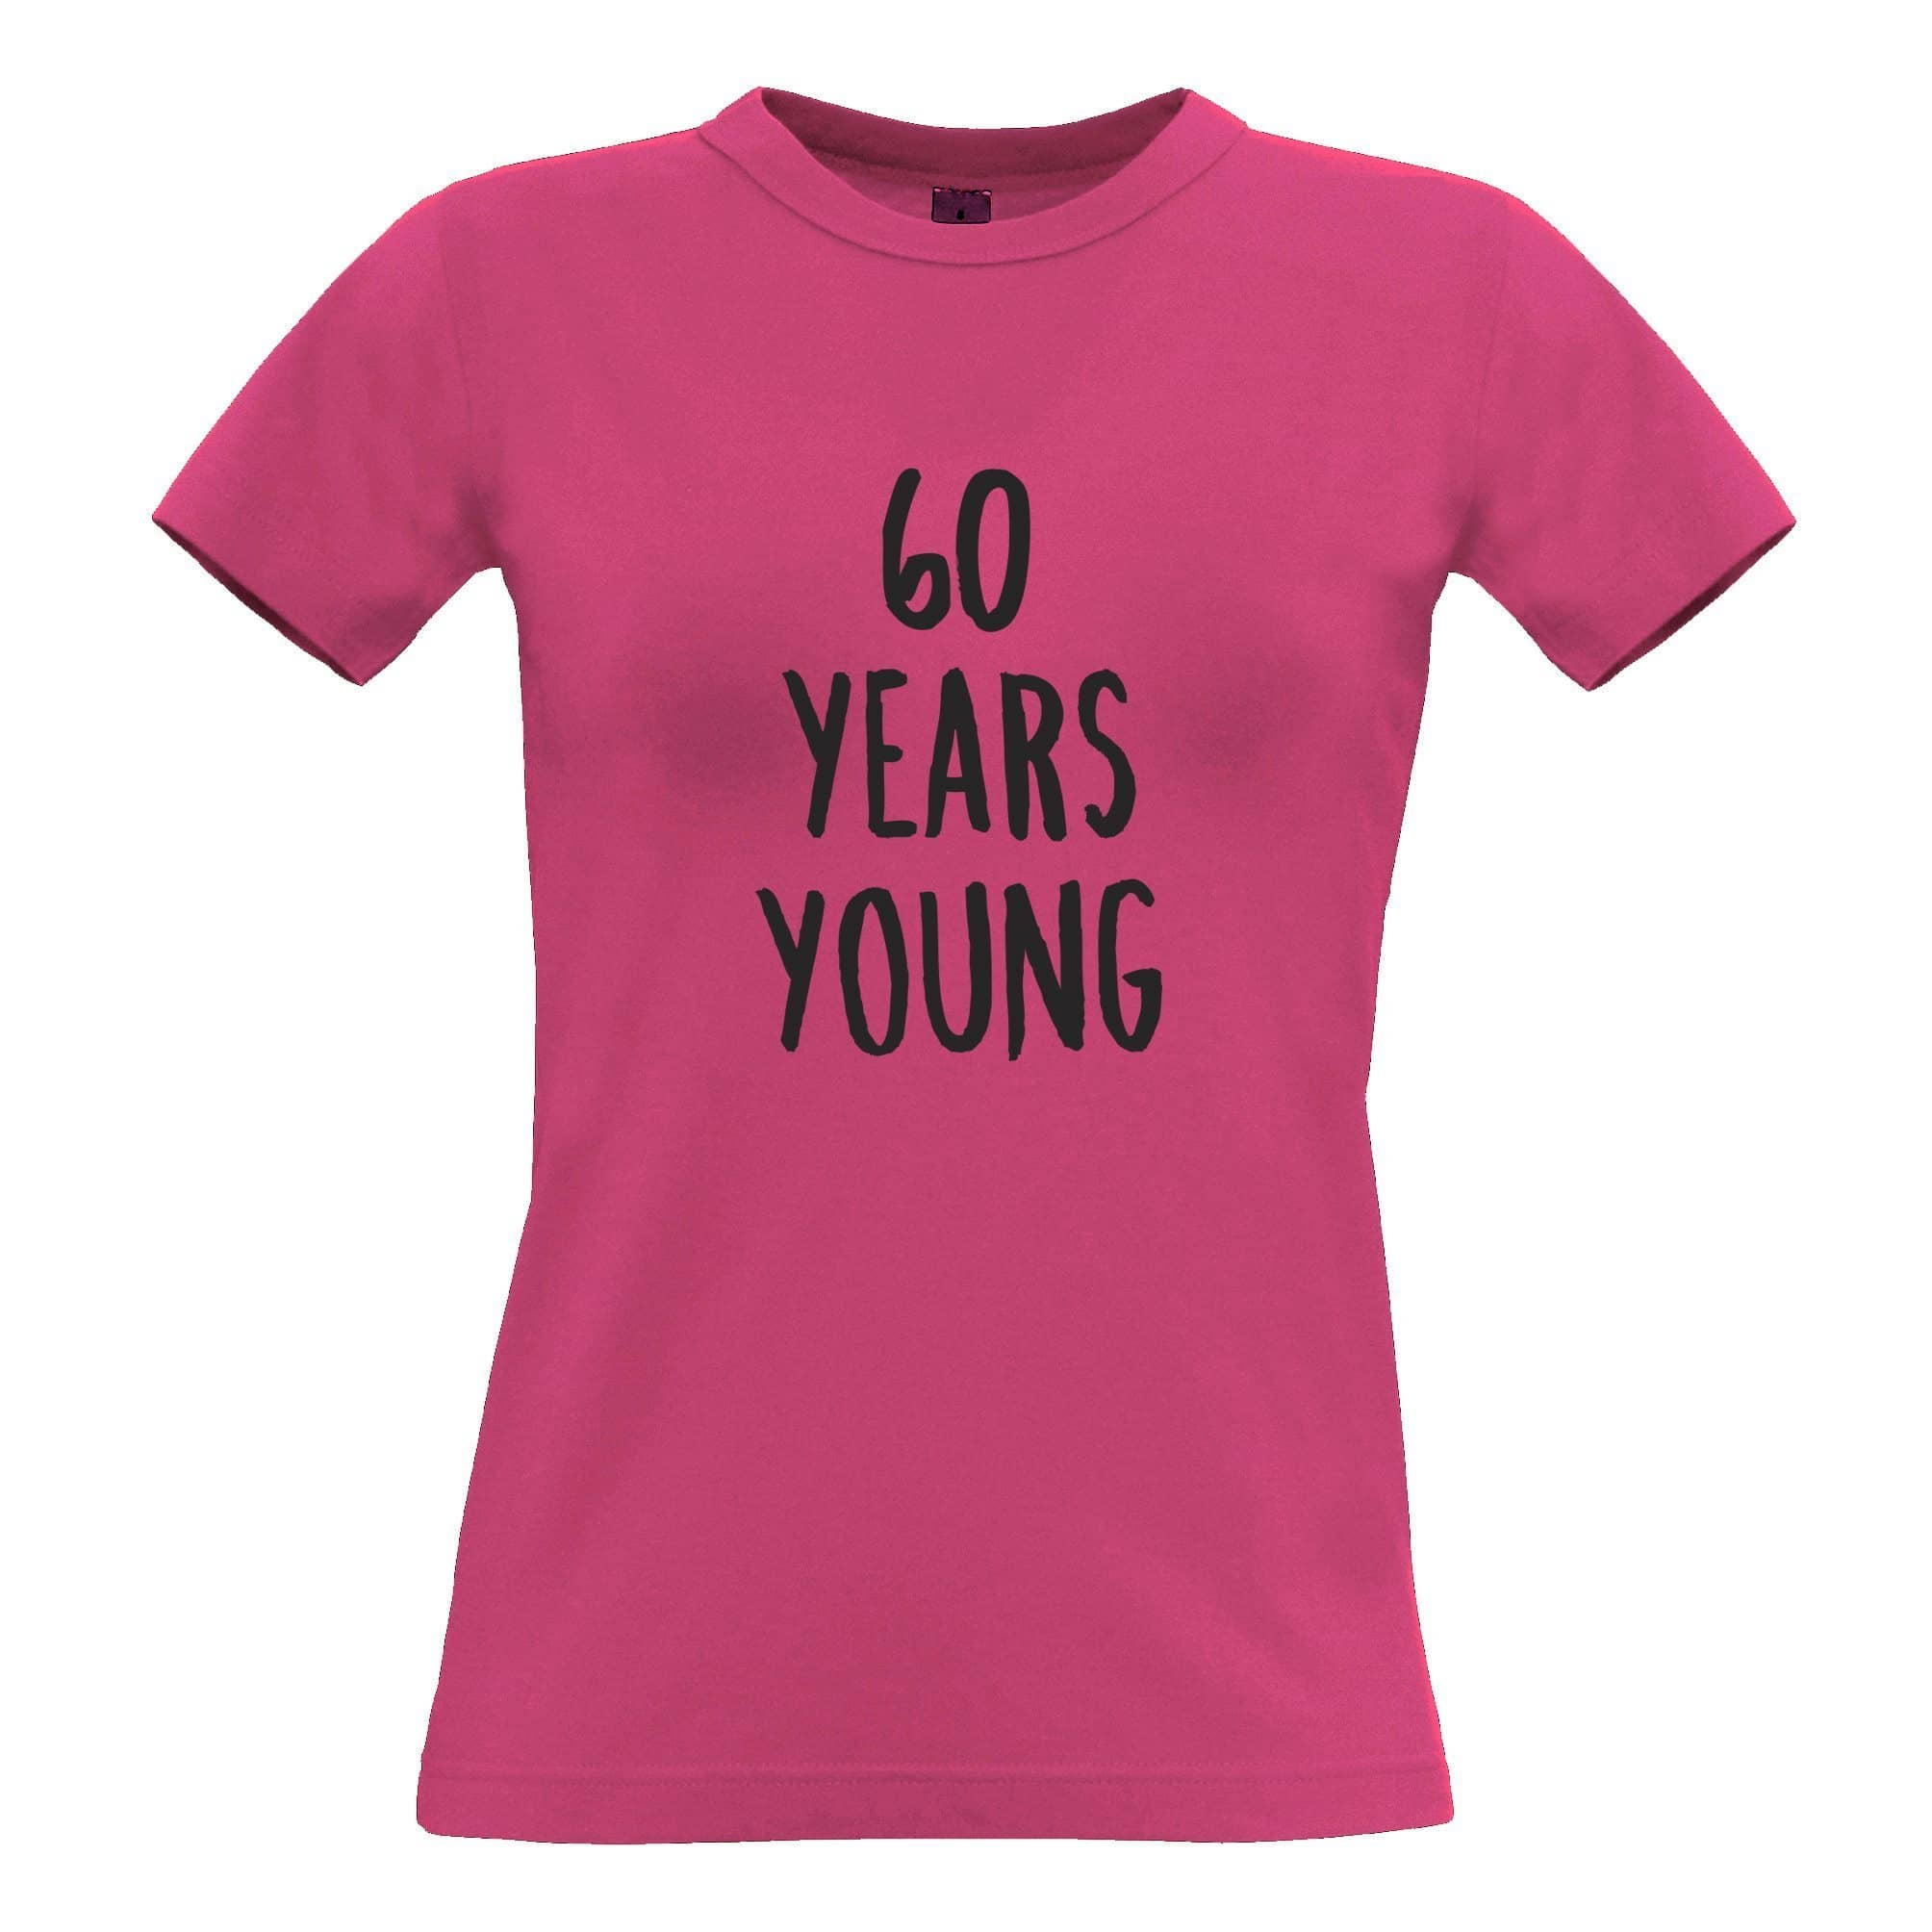 60th Birthday Joke Womens T Shirt 60 Years Young Novelty Text